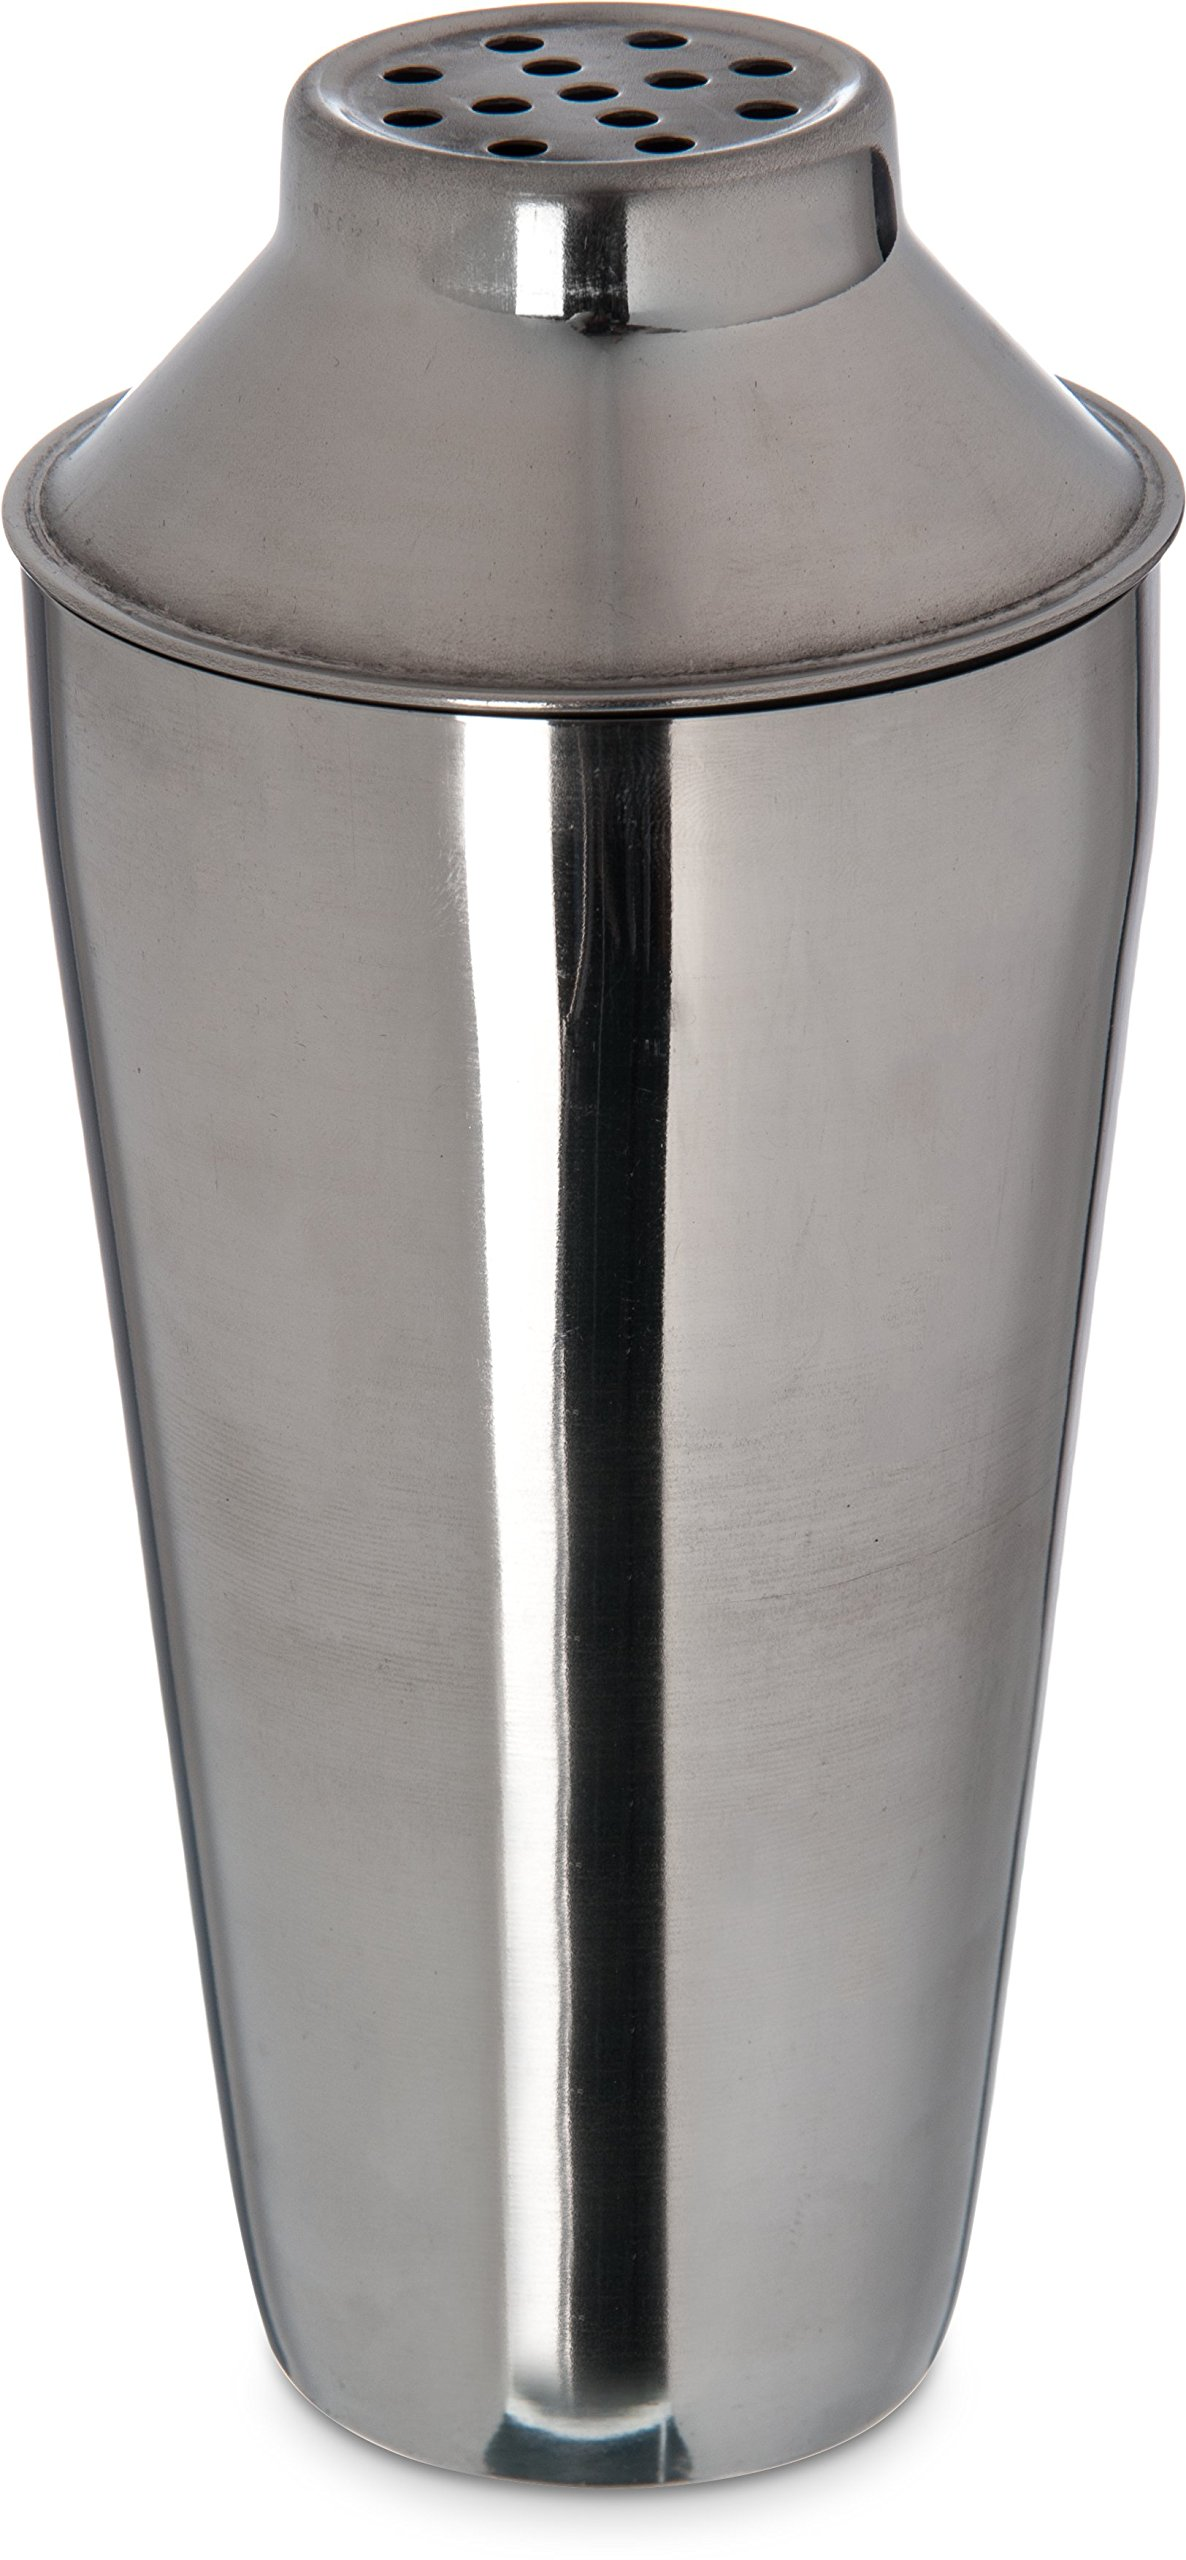 Carlisle 608600 Bar Essential Stainless Steel 18-8 Classic Cocktail Shaker, 30 oz. Capacity, 3-3/4 x 9-3/4'' (Case of 12) by Carlisle (Image #1)